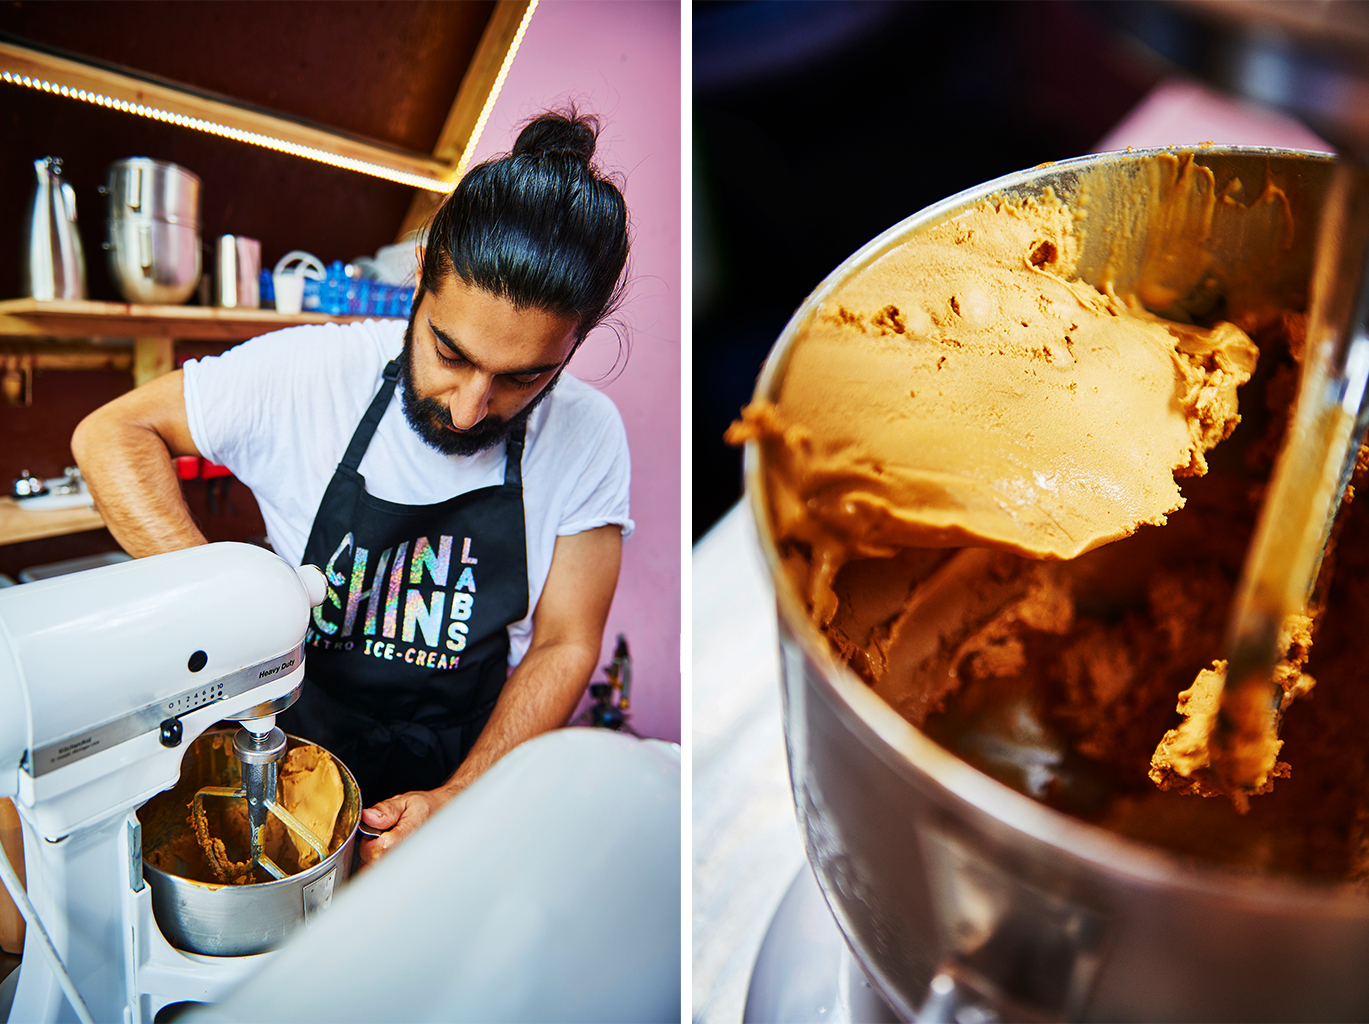 ice cream flavours chef cold ice London still photography shots vibrant colour red machine creating metallic summer sun edit nitro ice pink shades dry ice delicious tempting white eating out noise colours making ice cream